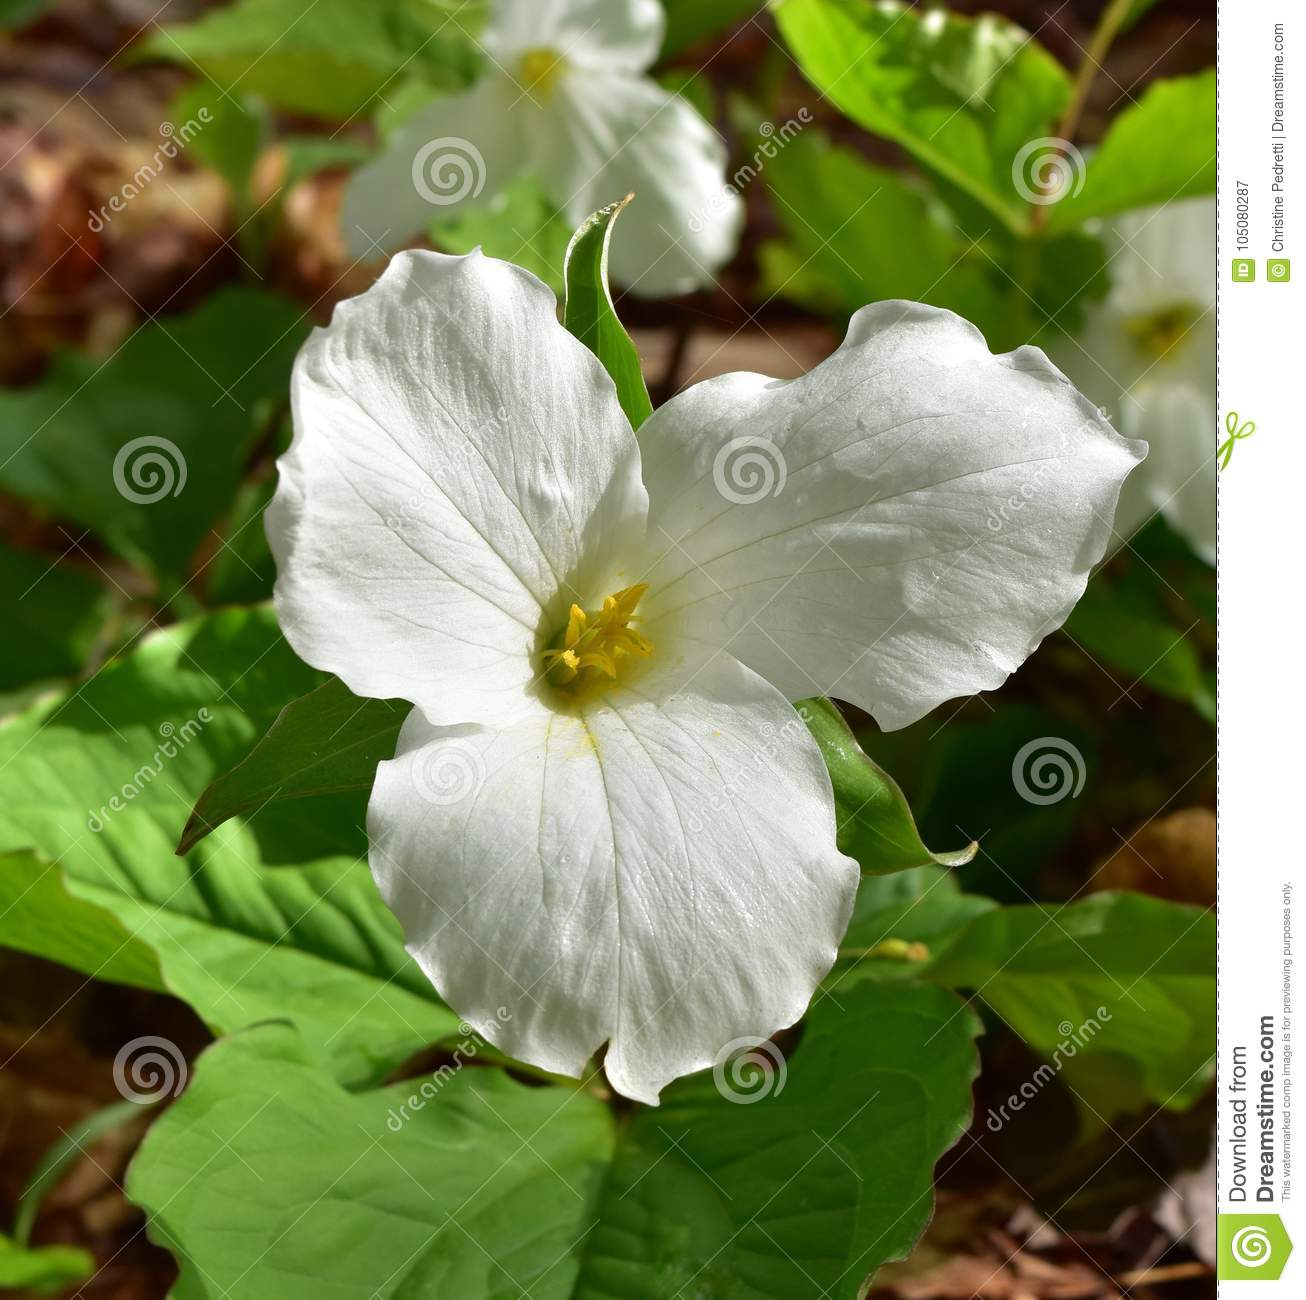 White Trillium Flower Speckled With Dew Stock Image Image Of